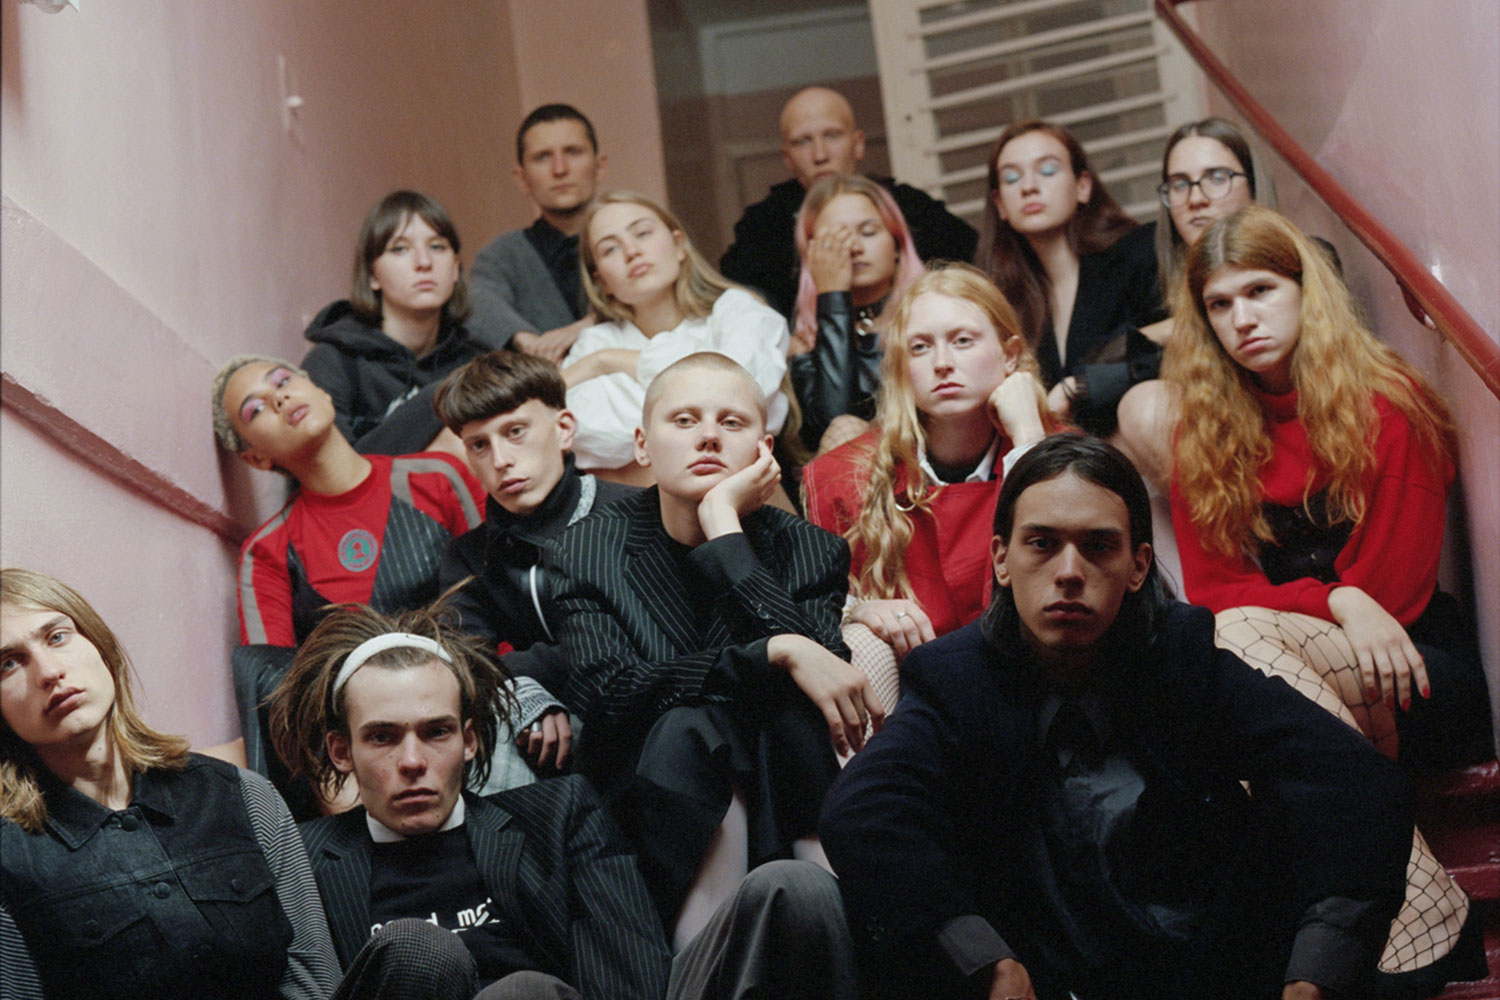 Photo of young people sitting on a staircase